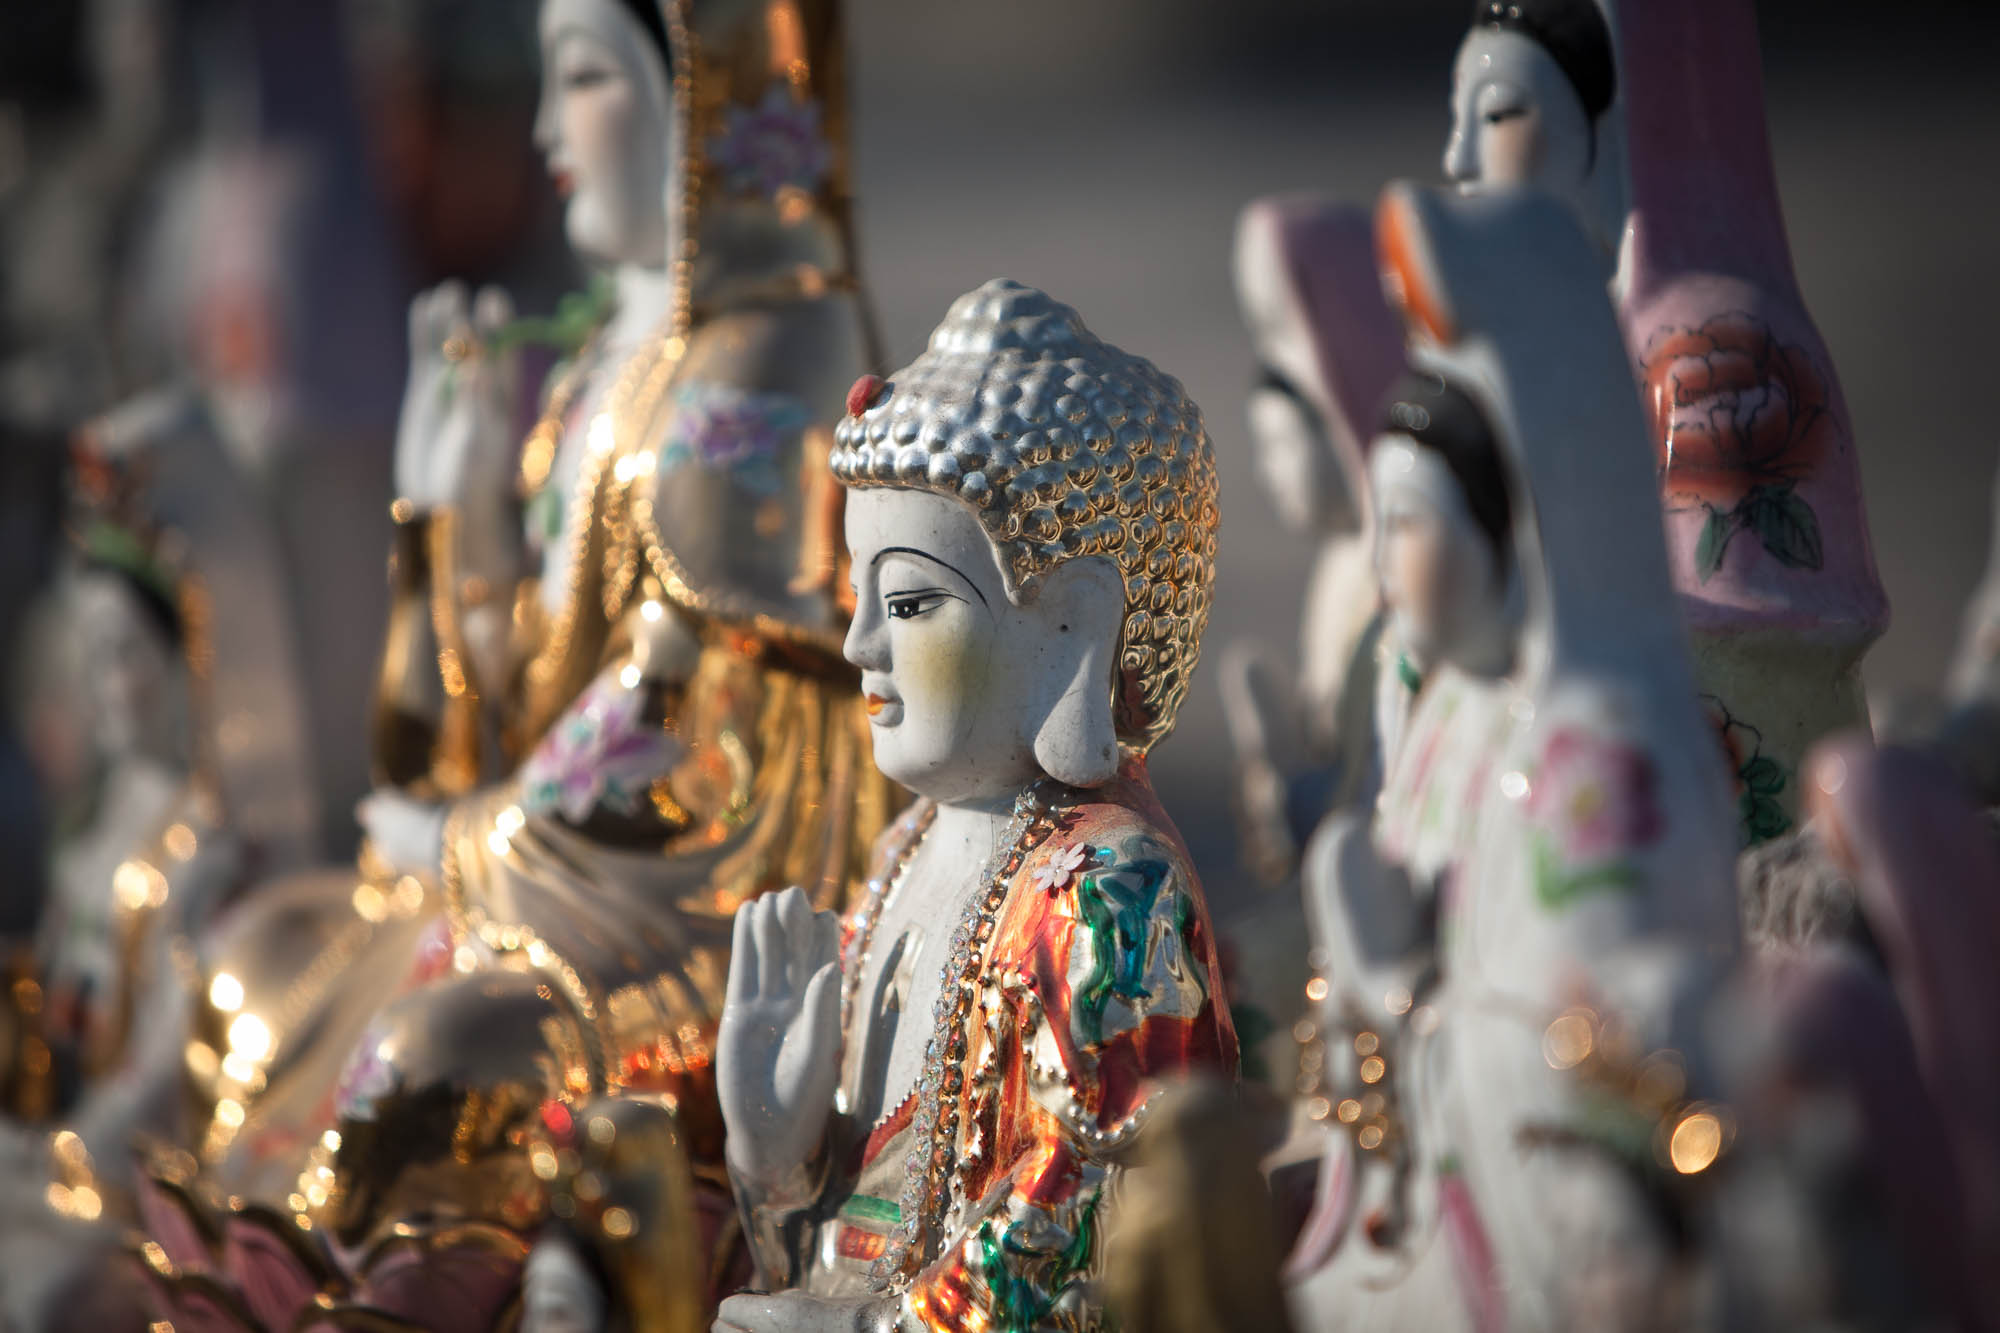 Buddhist figurines